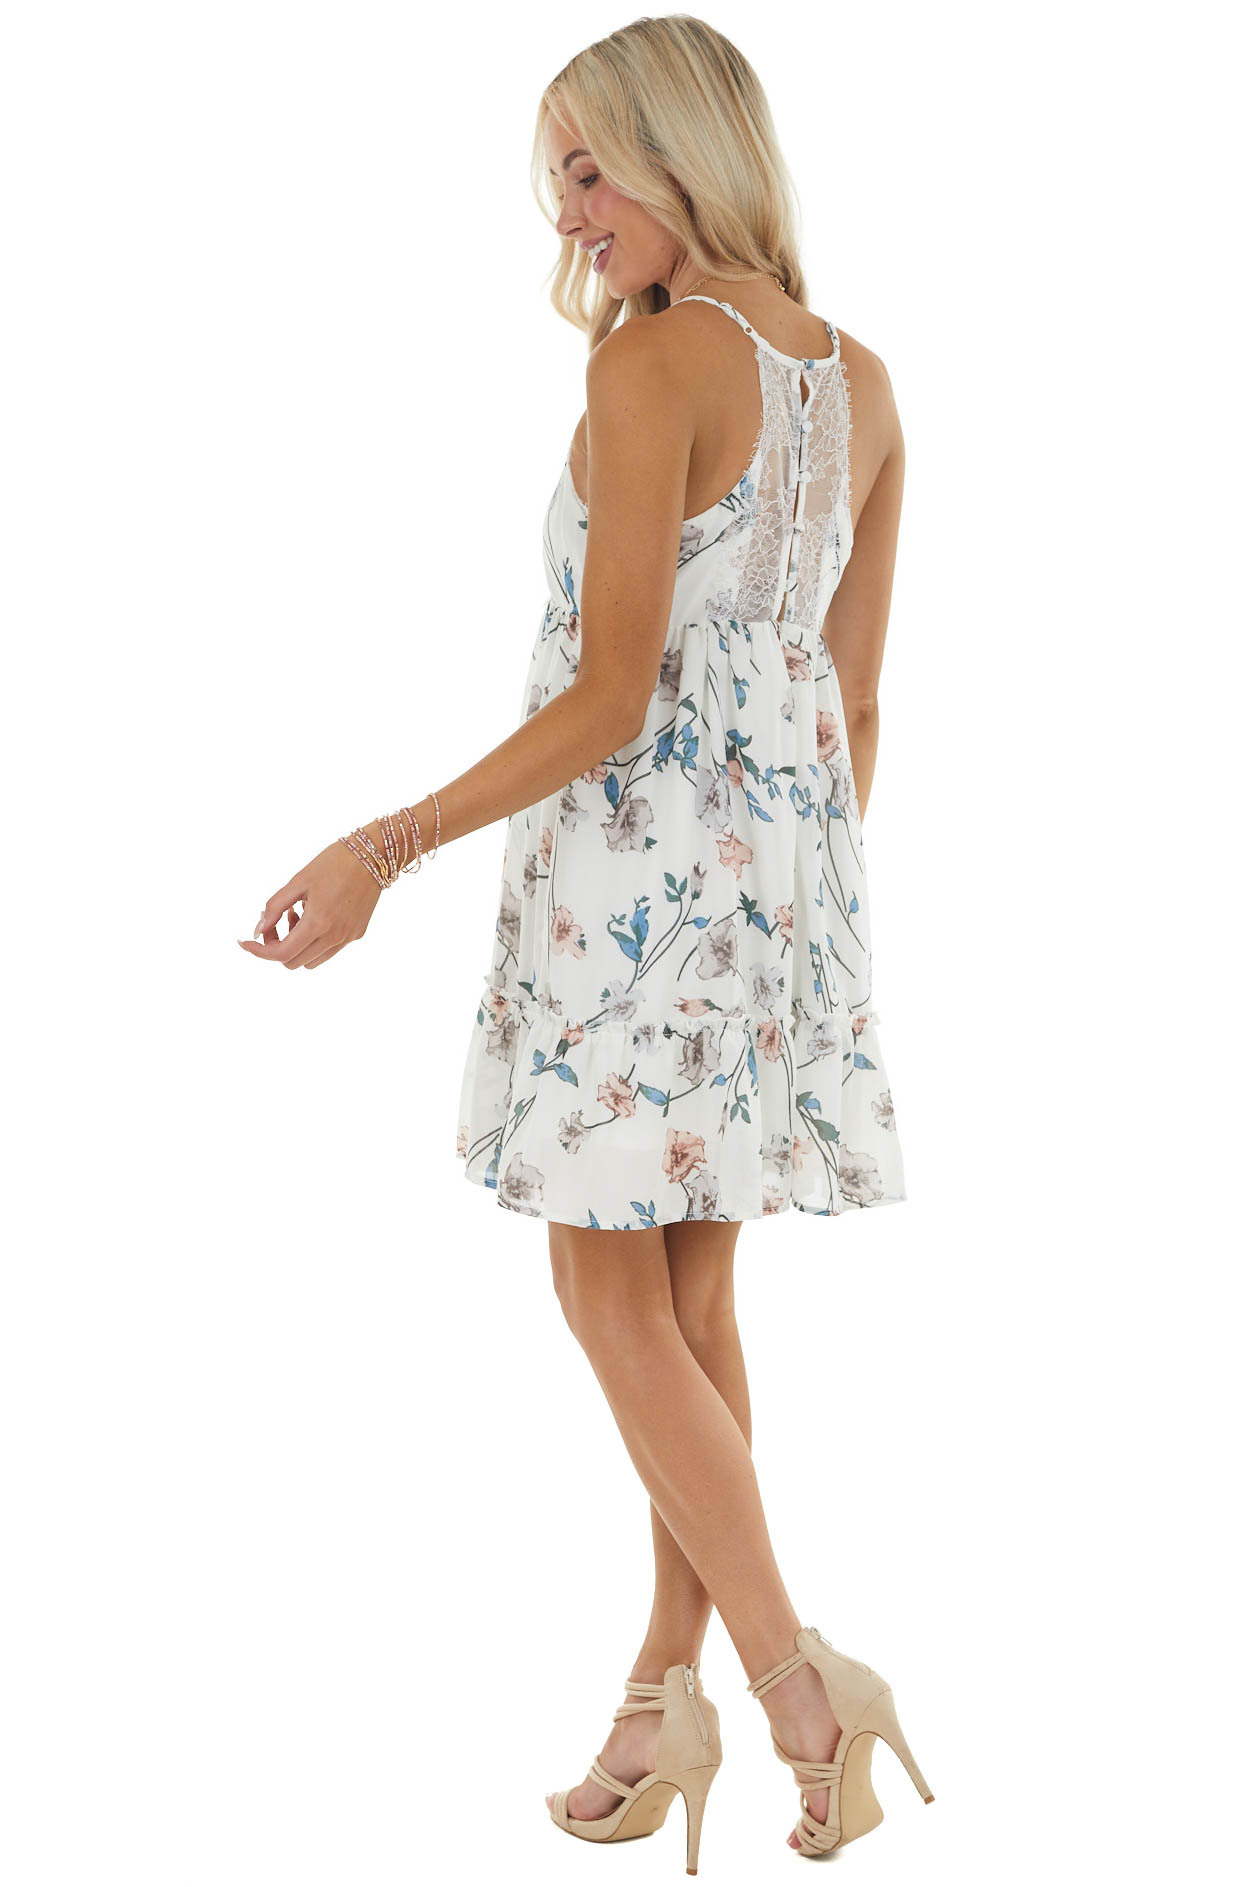 Ivory Floral Print Woven Babydoll Dress with Lace Details